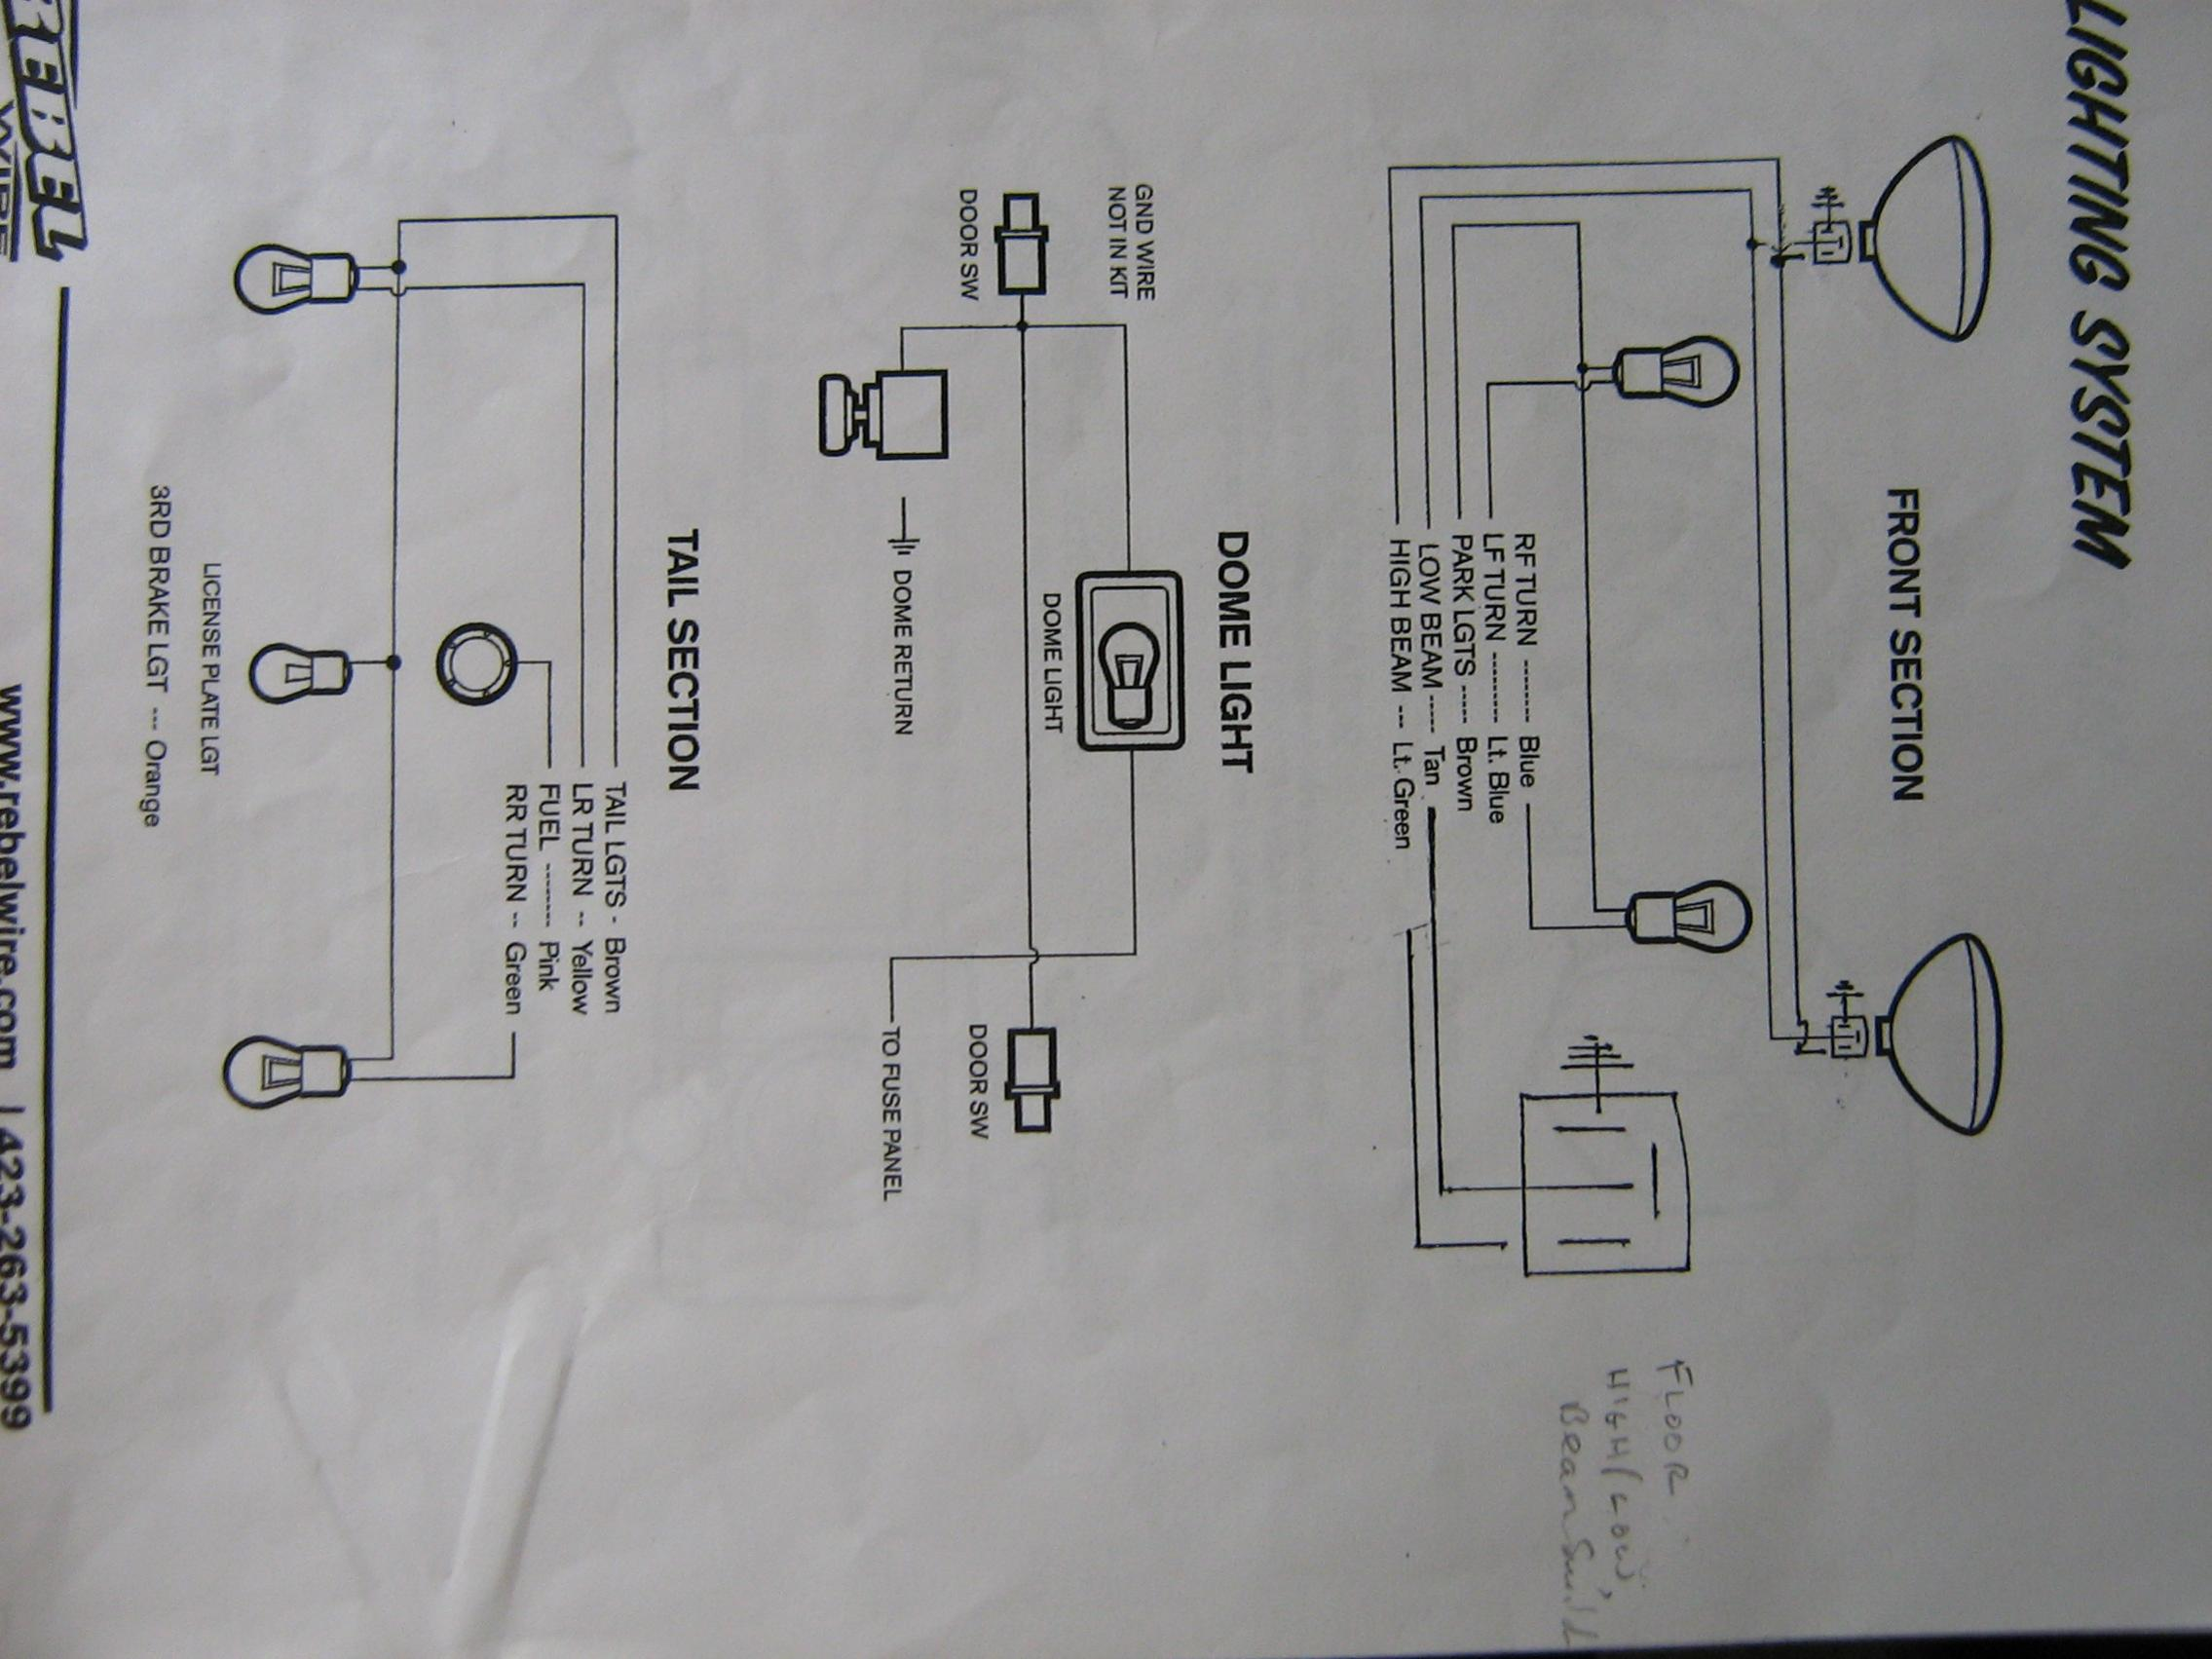 Rebel Wiring Harness Instructions Wire Center Ez Diagram Hot Rod Lets See Diagrams For The H A M B Rh Jalopyjournal Com Universal Street